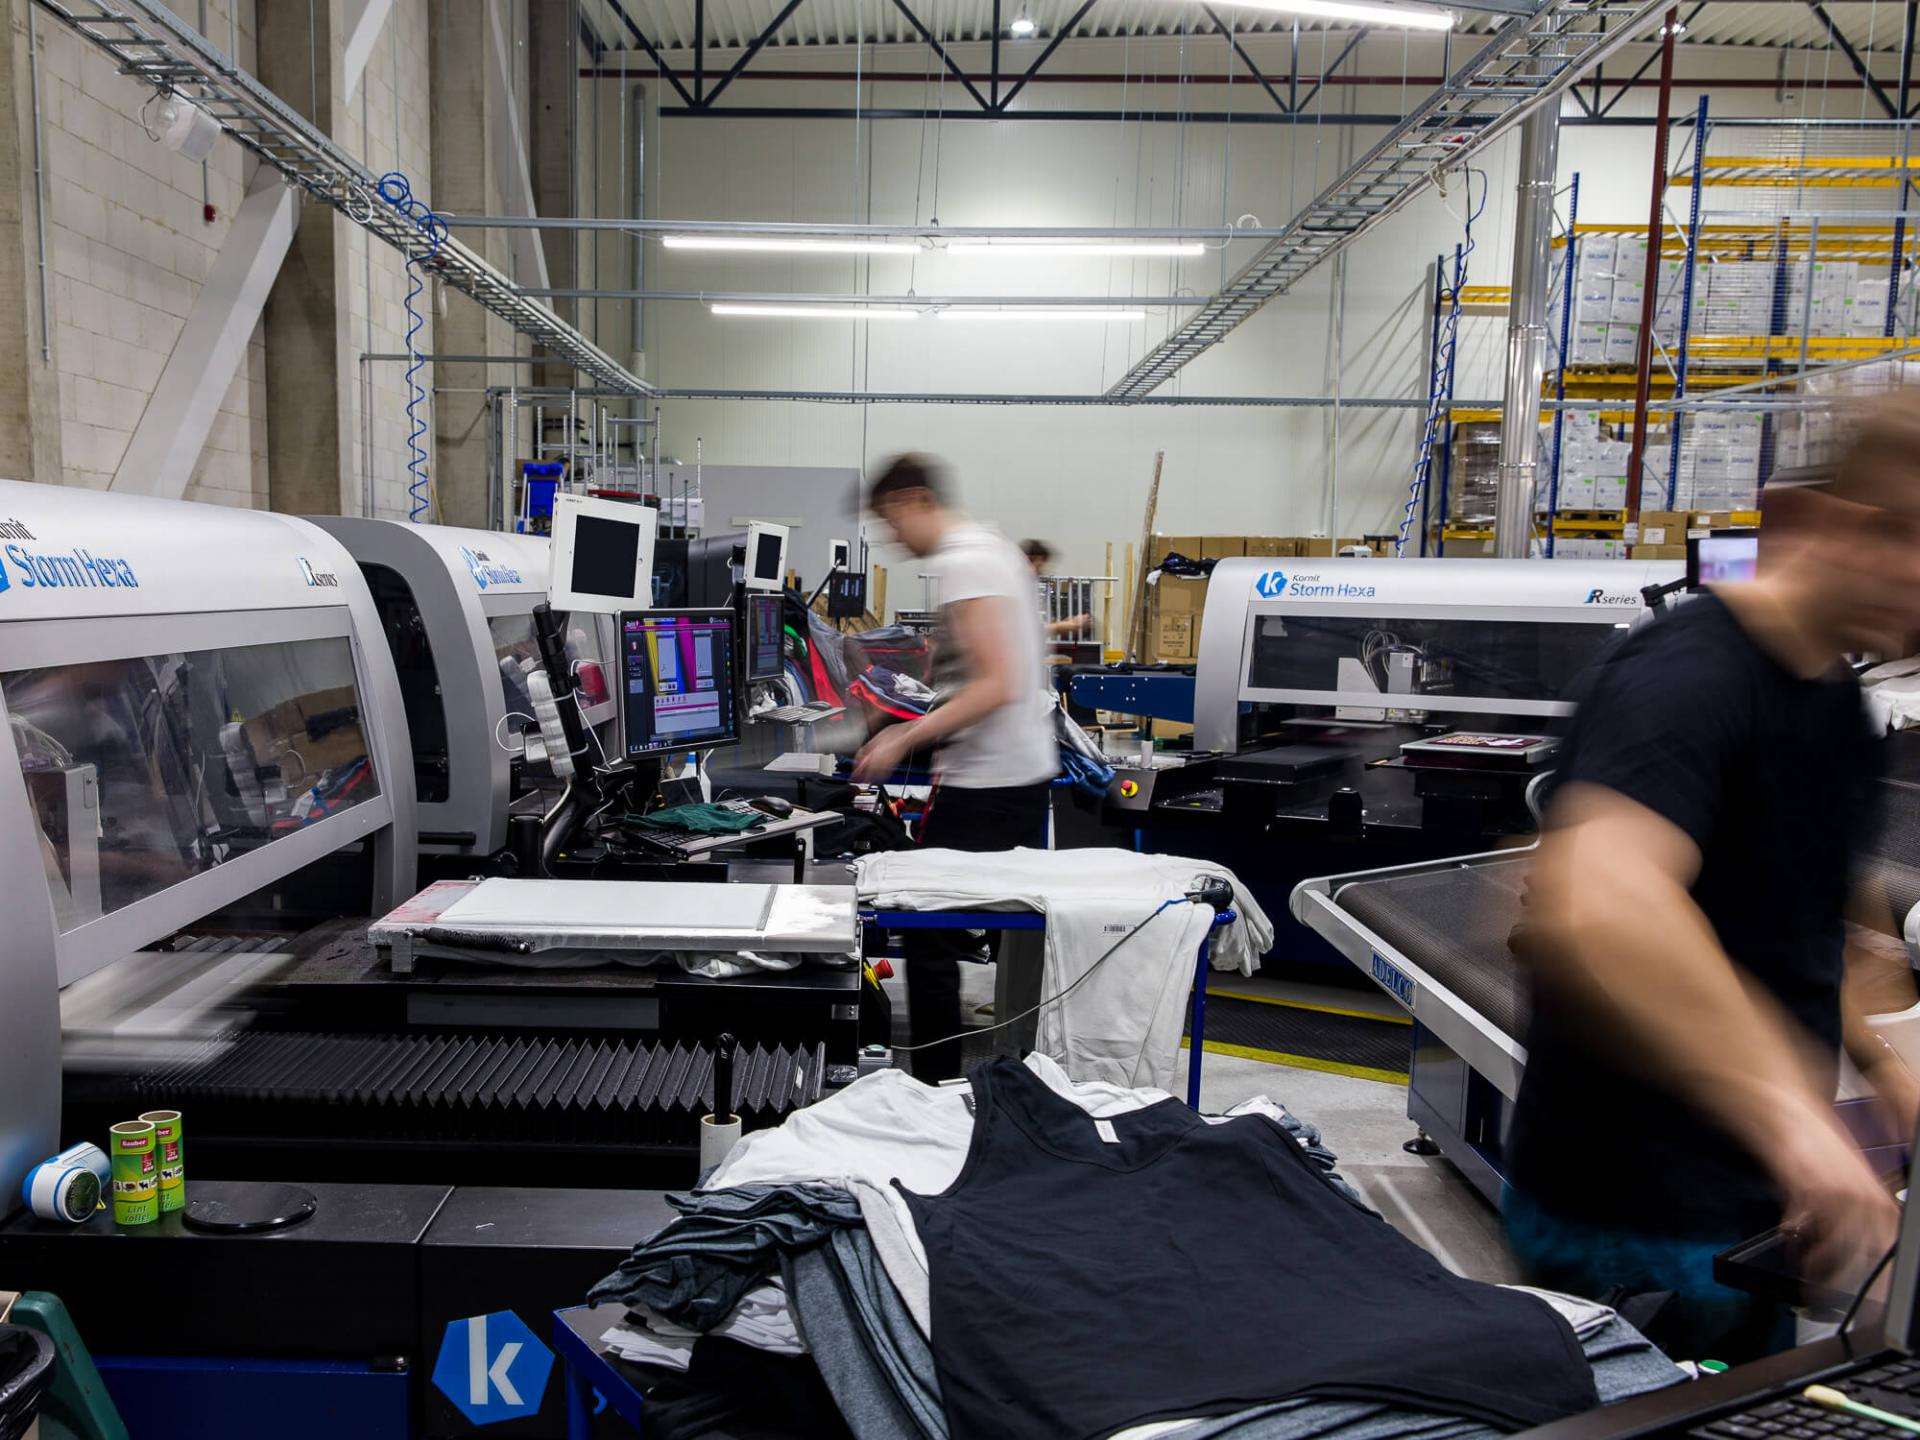 Printful Executes Major Global Expansion of On-Demand Apparel and Fashion Production with Kornit Digital